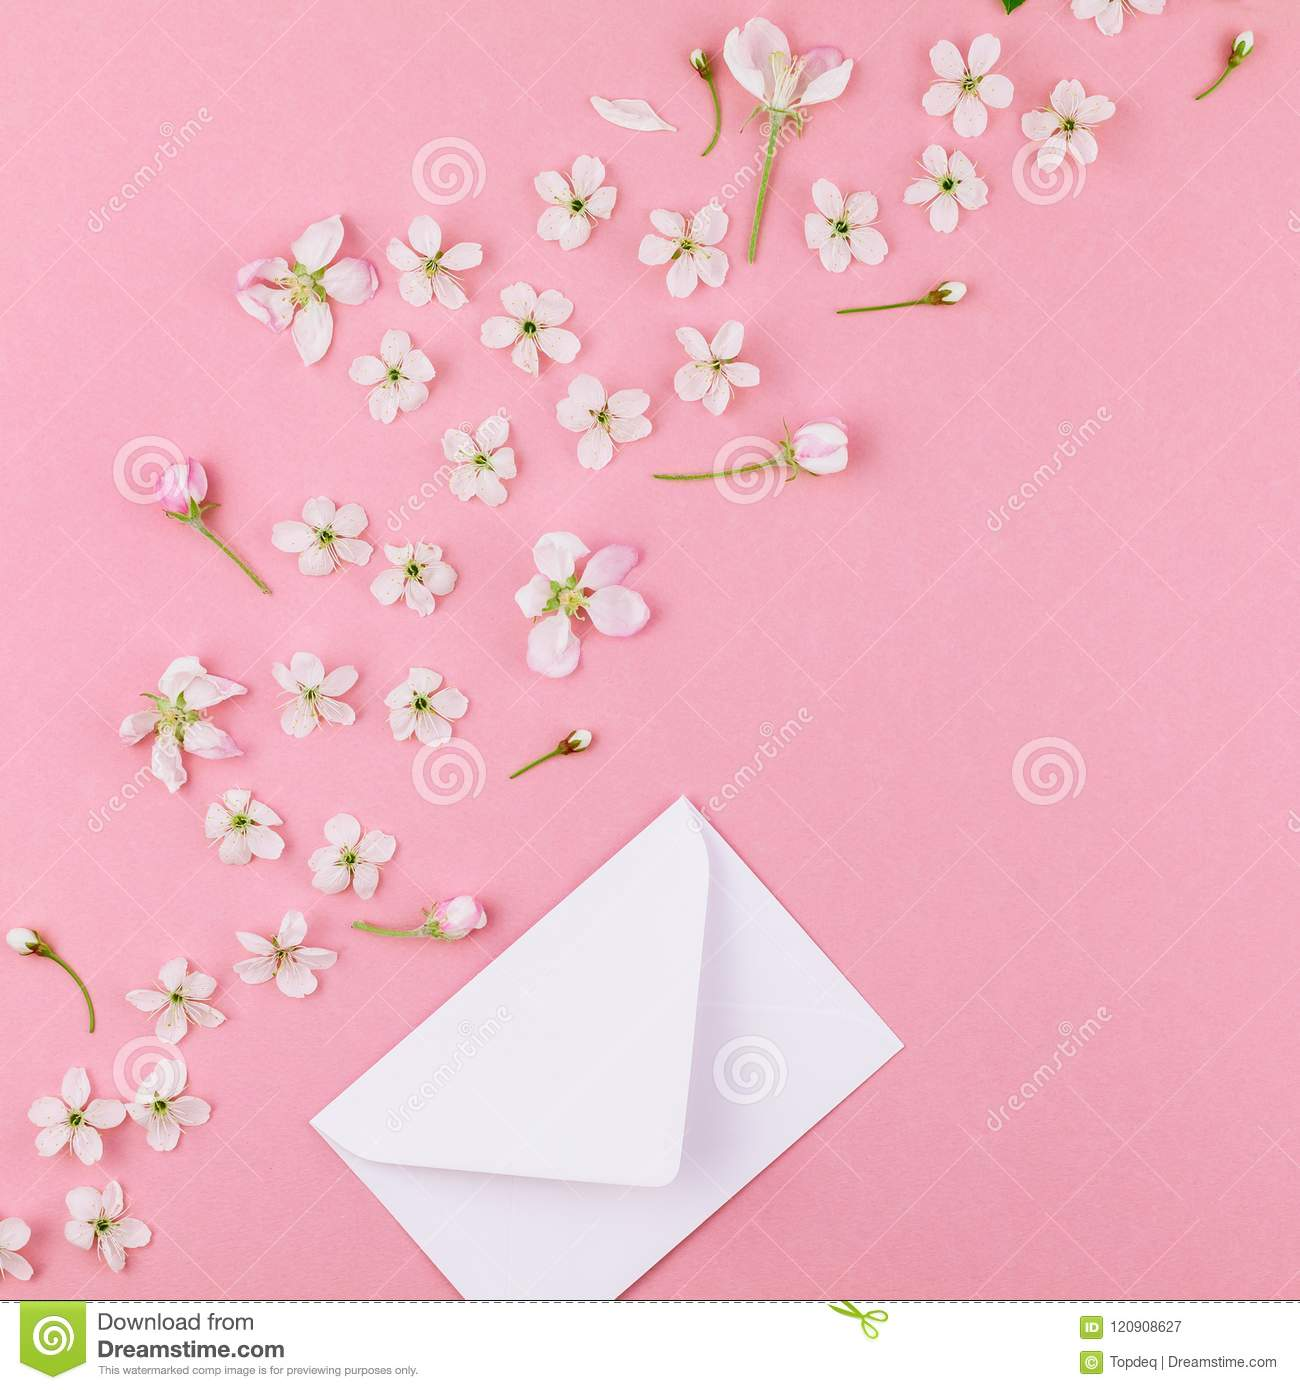 Concept Of Love Letter With Envelope And Flowers Stock Image Image